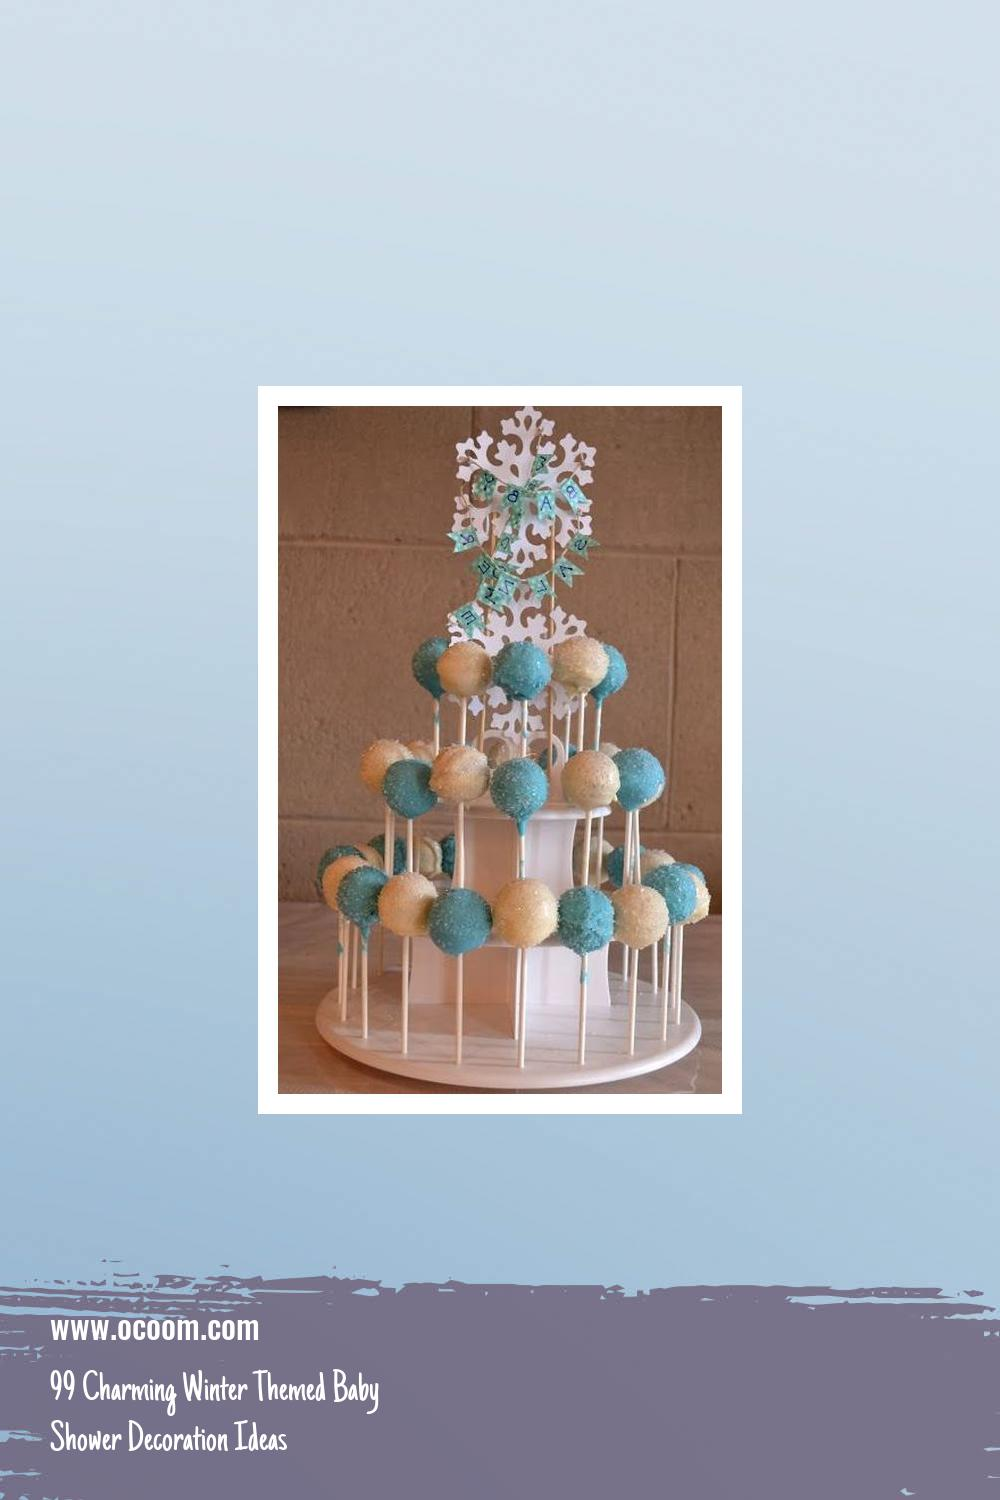 99 Charming Winter Themed Baby Shower Decoration Ideas 2